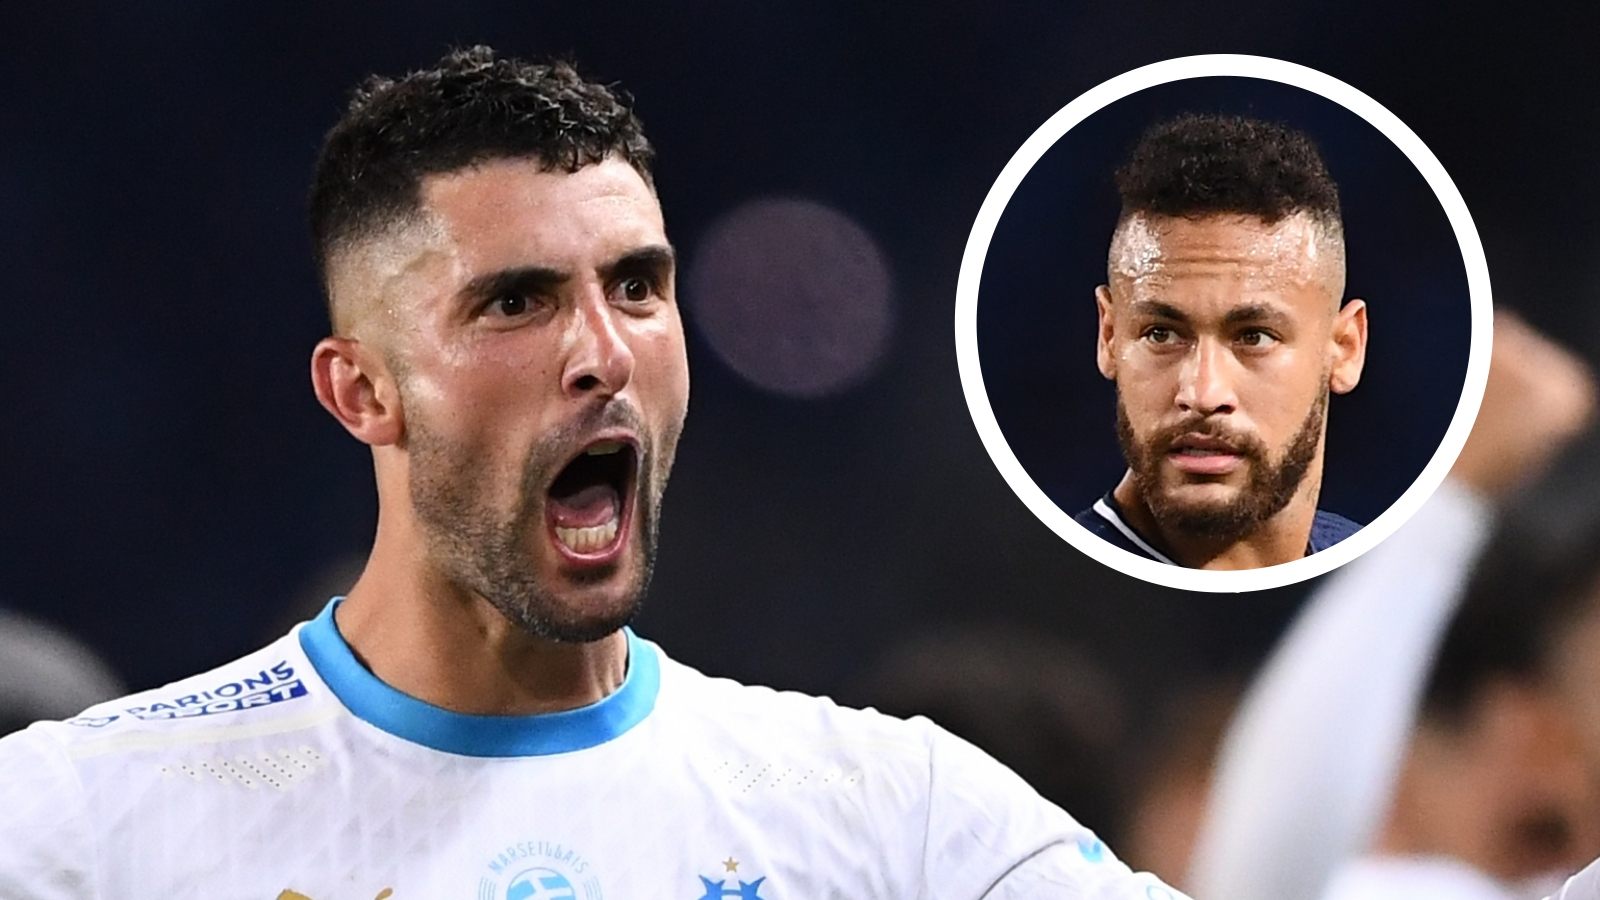 No punishment for PSG star Neymar or Marseille's Gonzalez following racism accusation